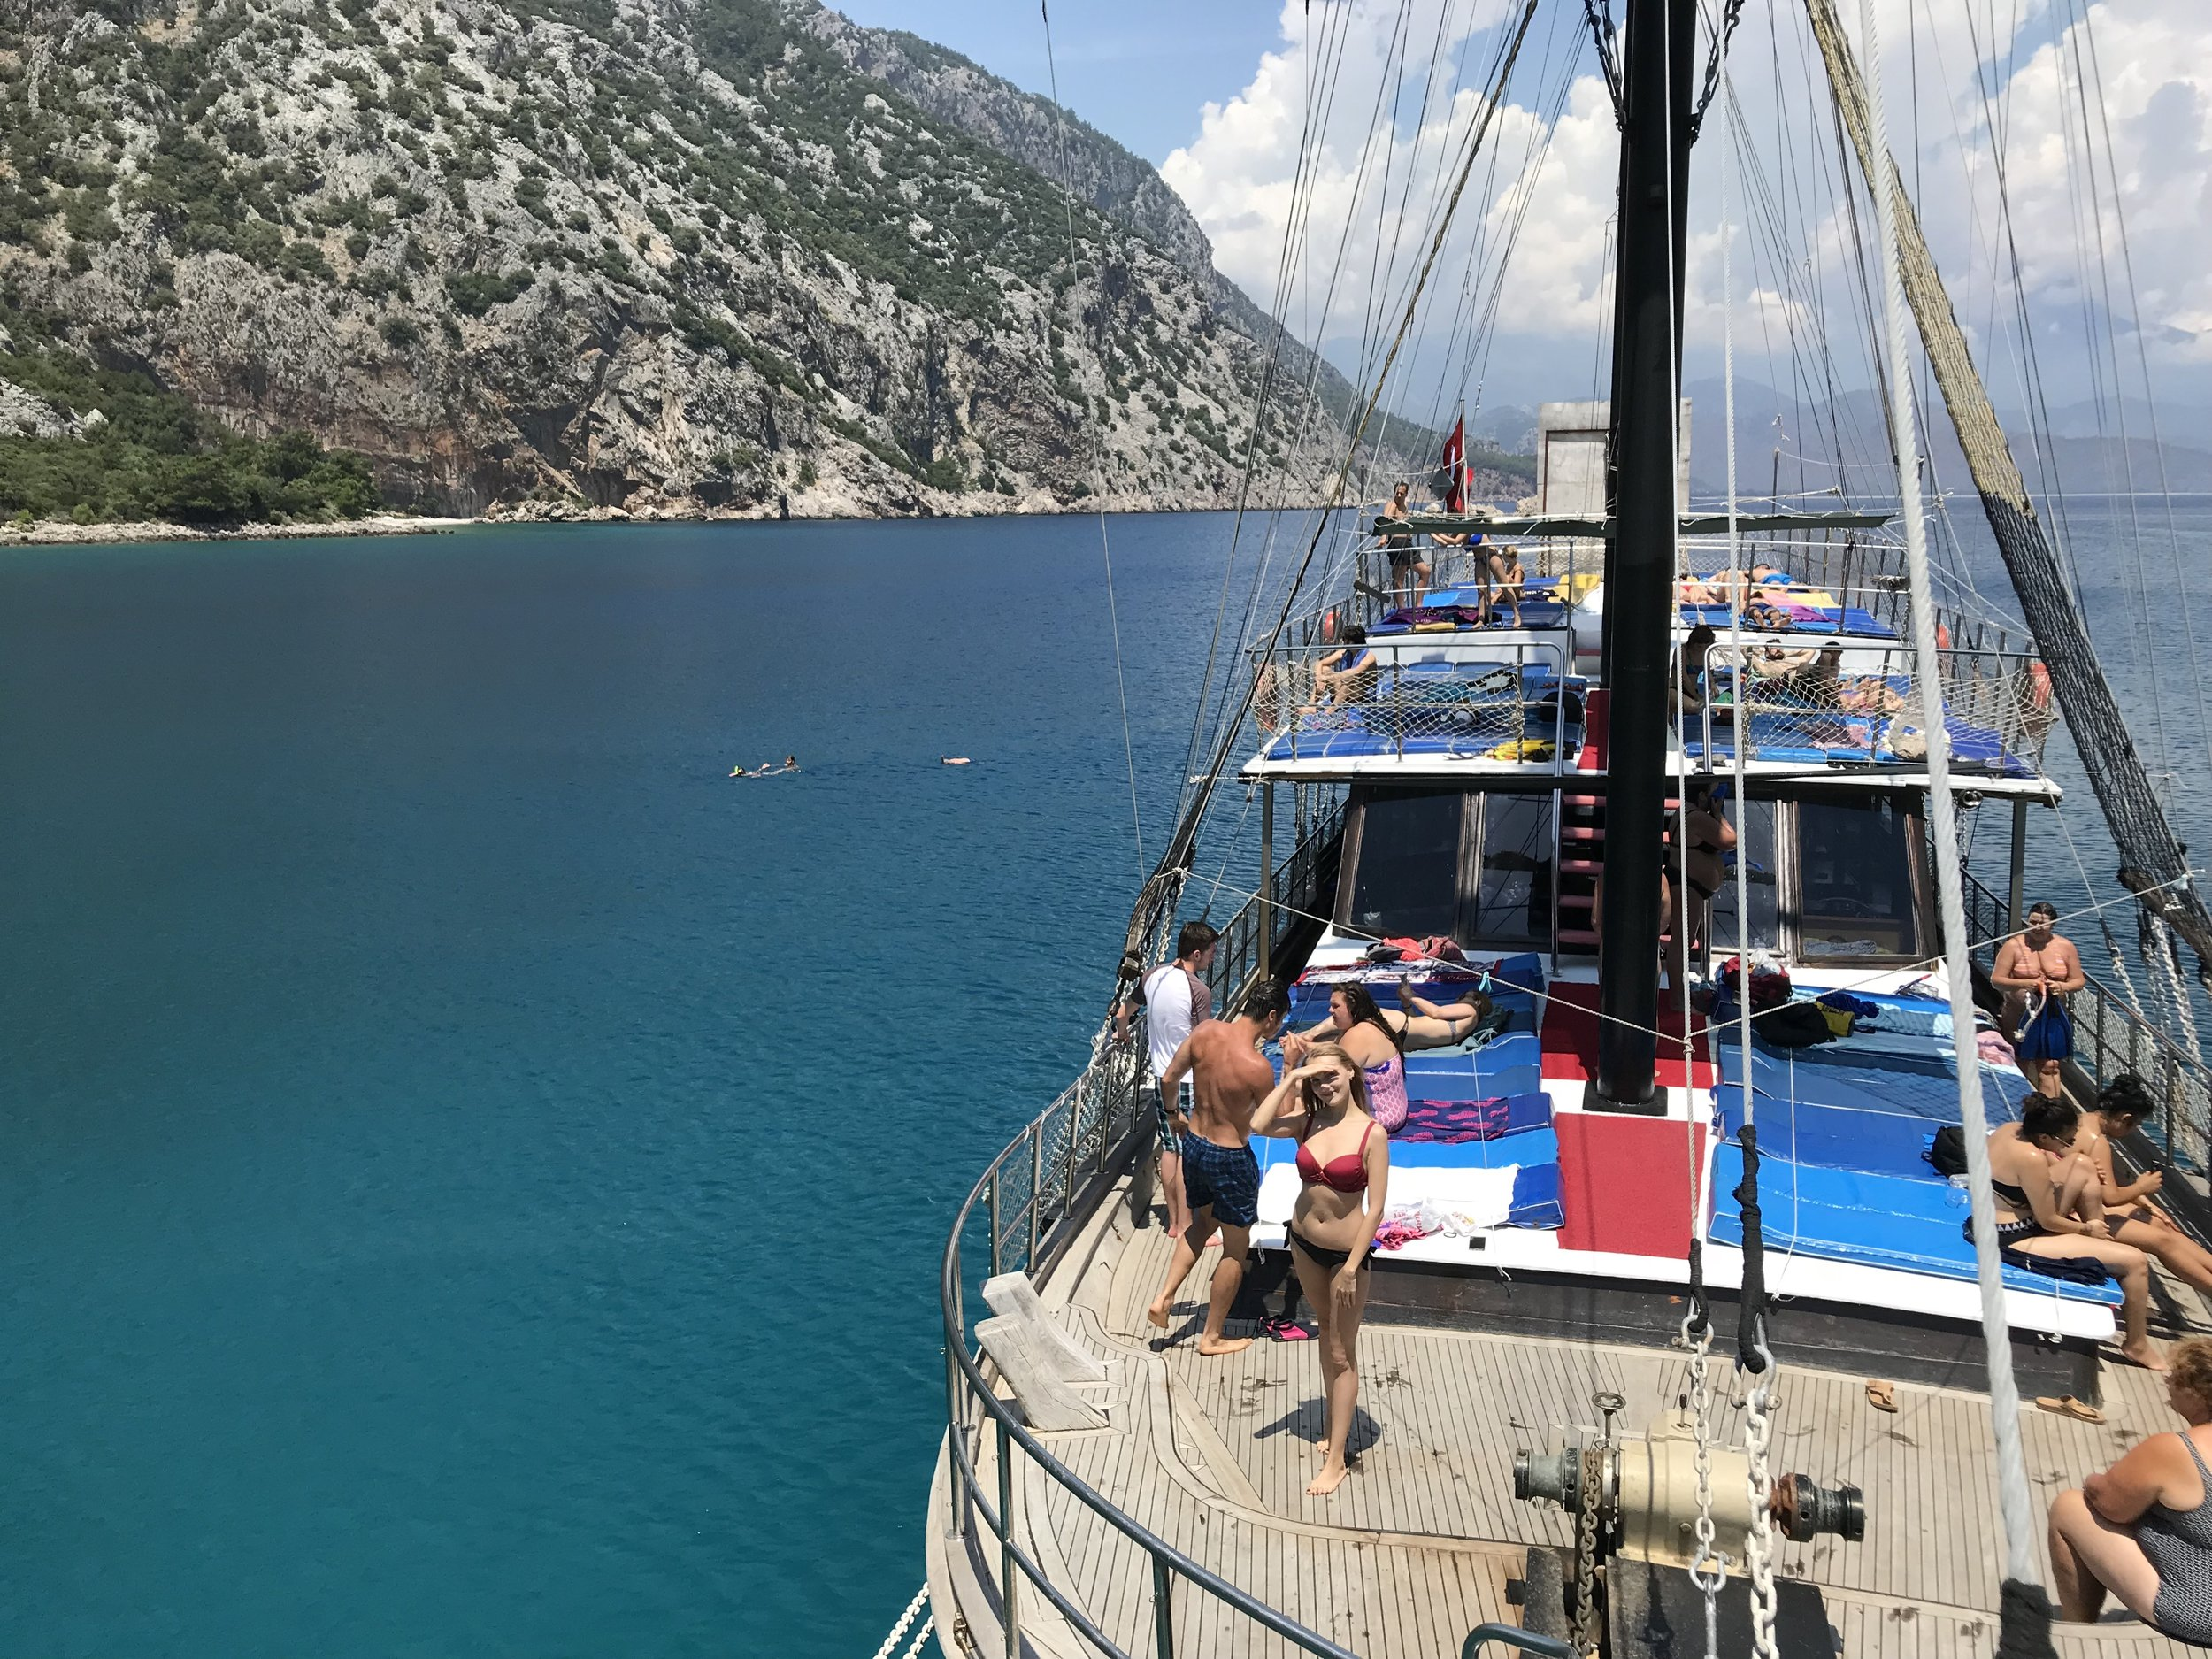 Blue water and people on boat in Turkey